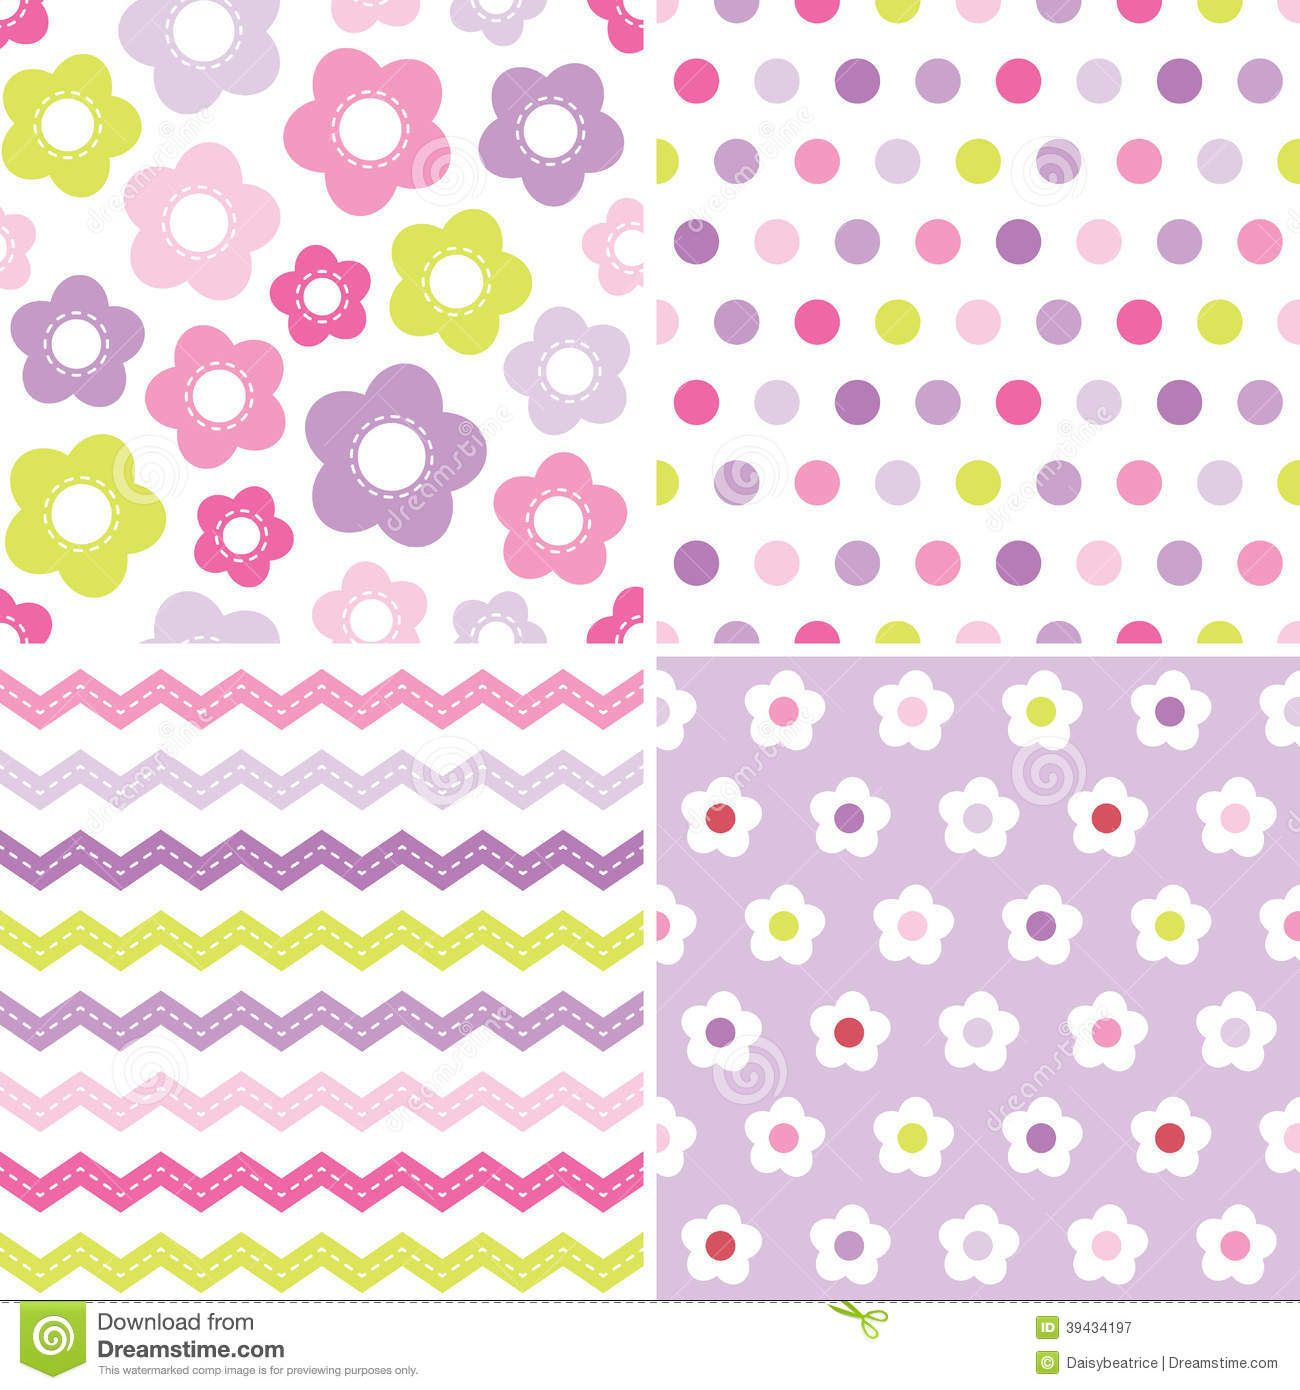 Related image papel estampado 2 pinterest wrapping papers flowers dots and zigzag wrapping paper negle Image collections